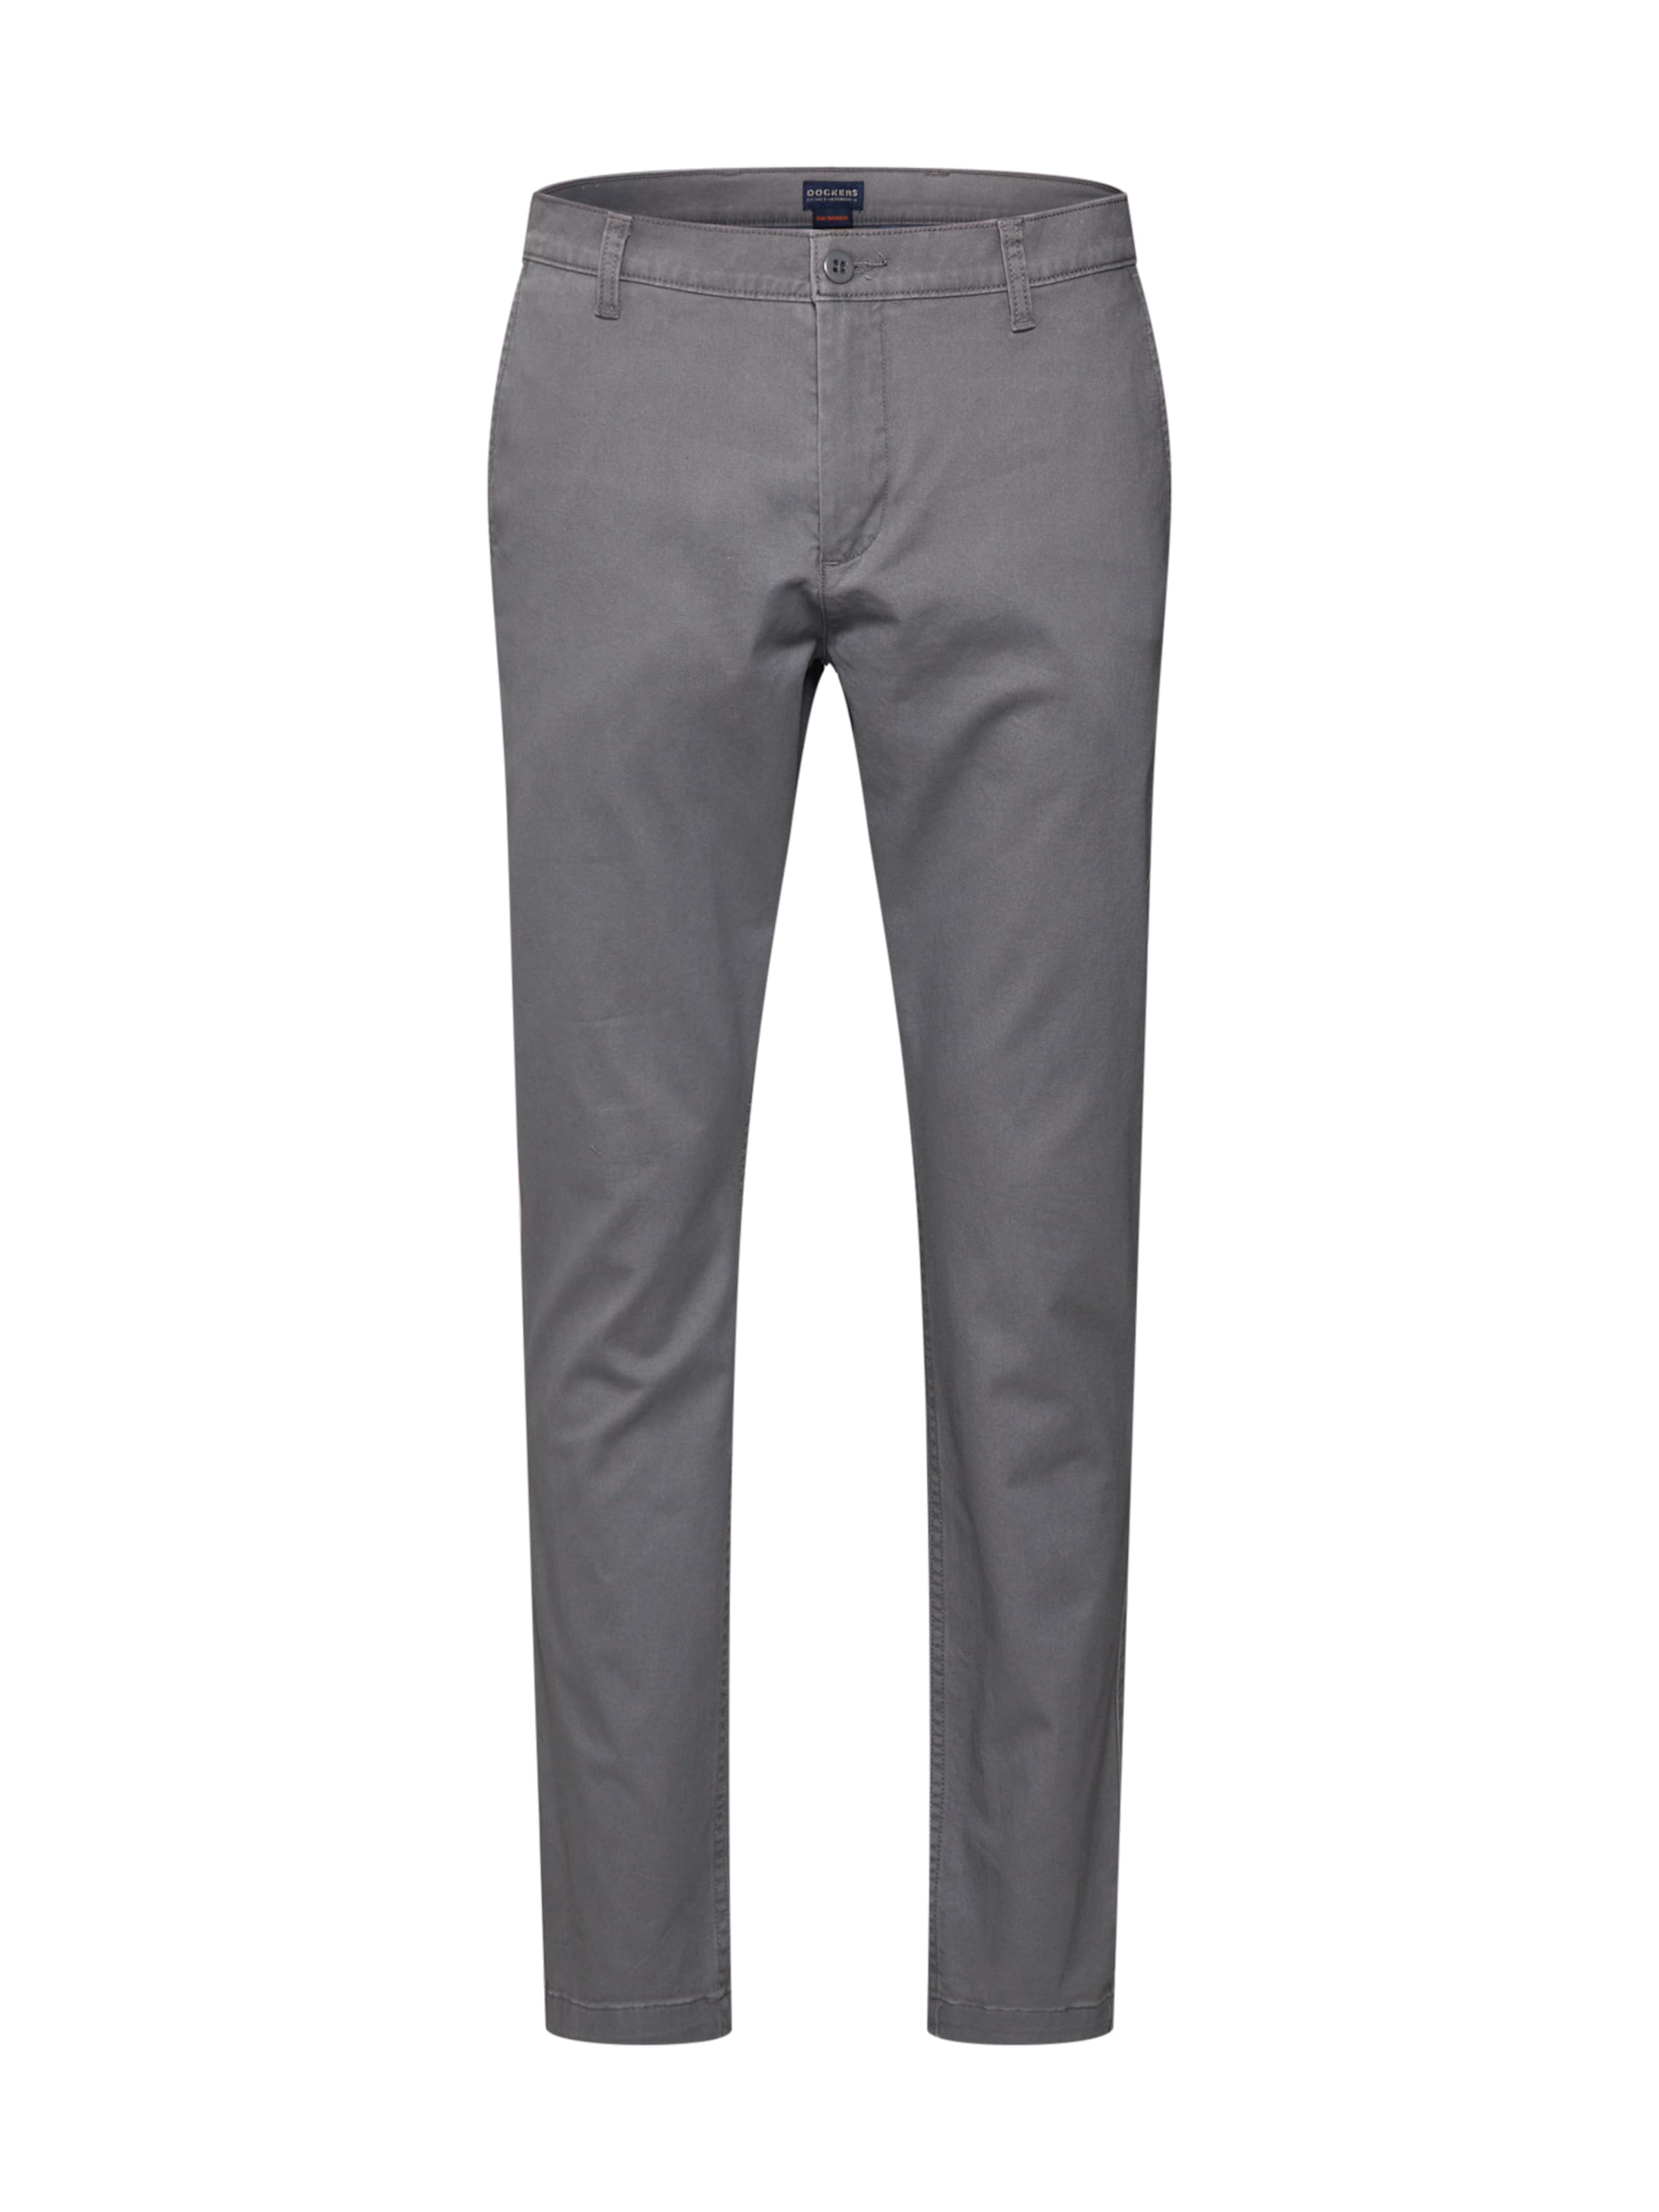 Khaki Grau Hose Twill' 'washed In Dockers SlimtaperedStretch Y7ybf6g